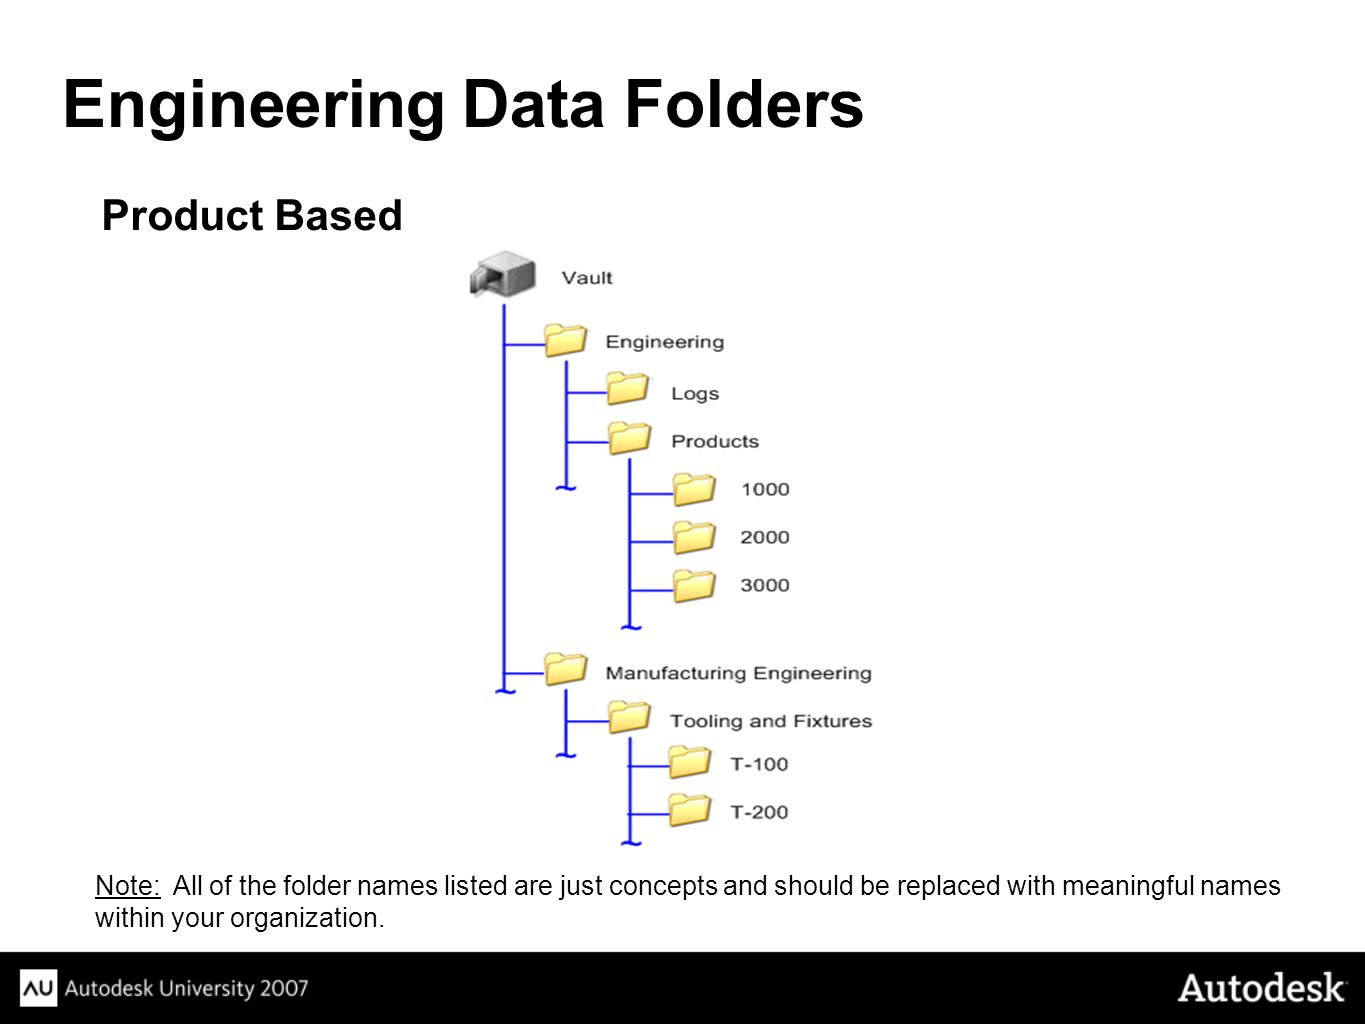 Product Based Engineering Data Folders Note: All of the folder names listed are just concepts and should be replaced with meaningful names within your organization.